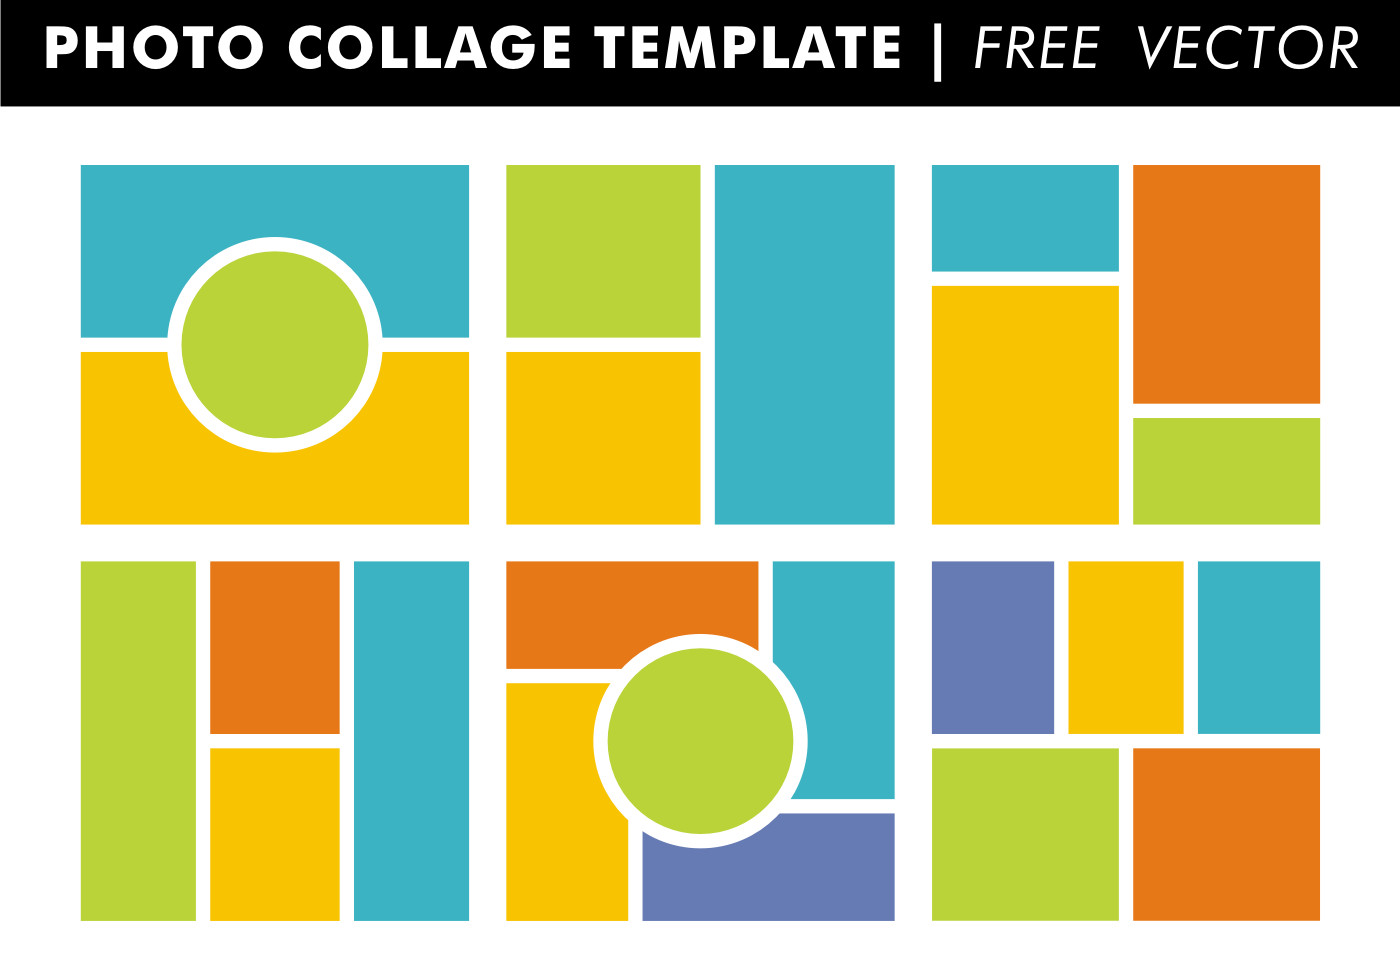 Photo Collage Template Download Collage Templates Vector Download Free Vector Art